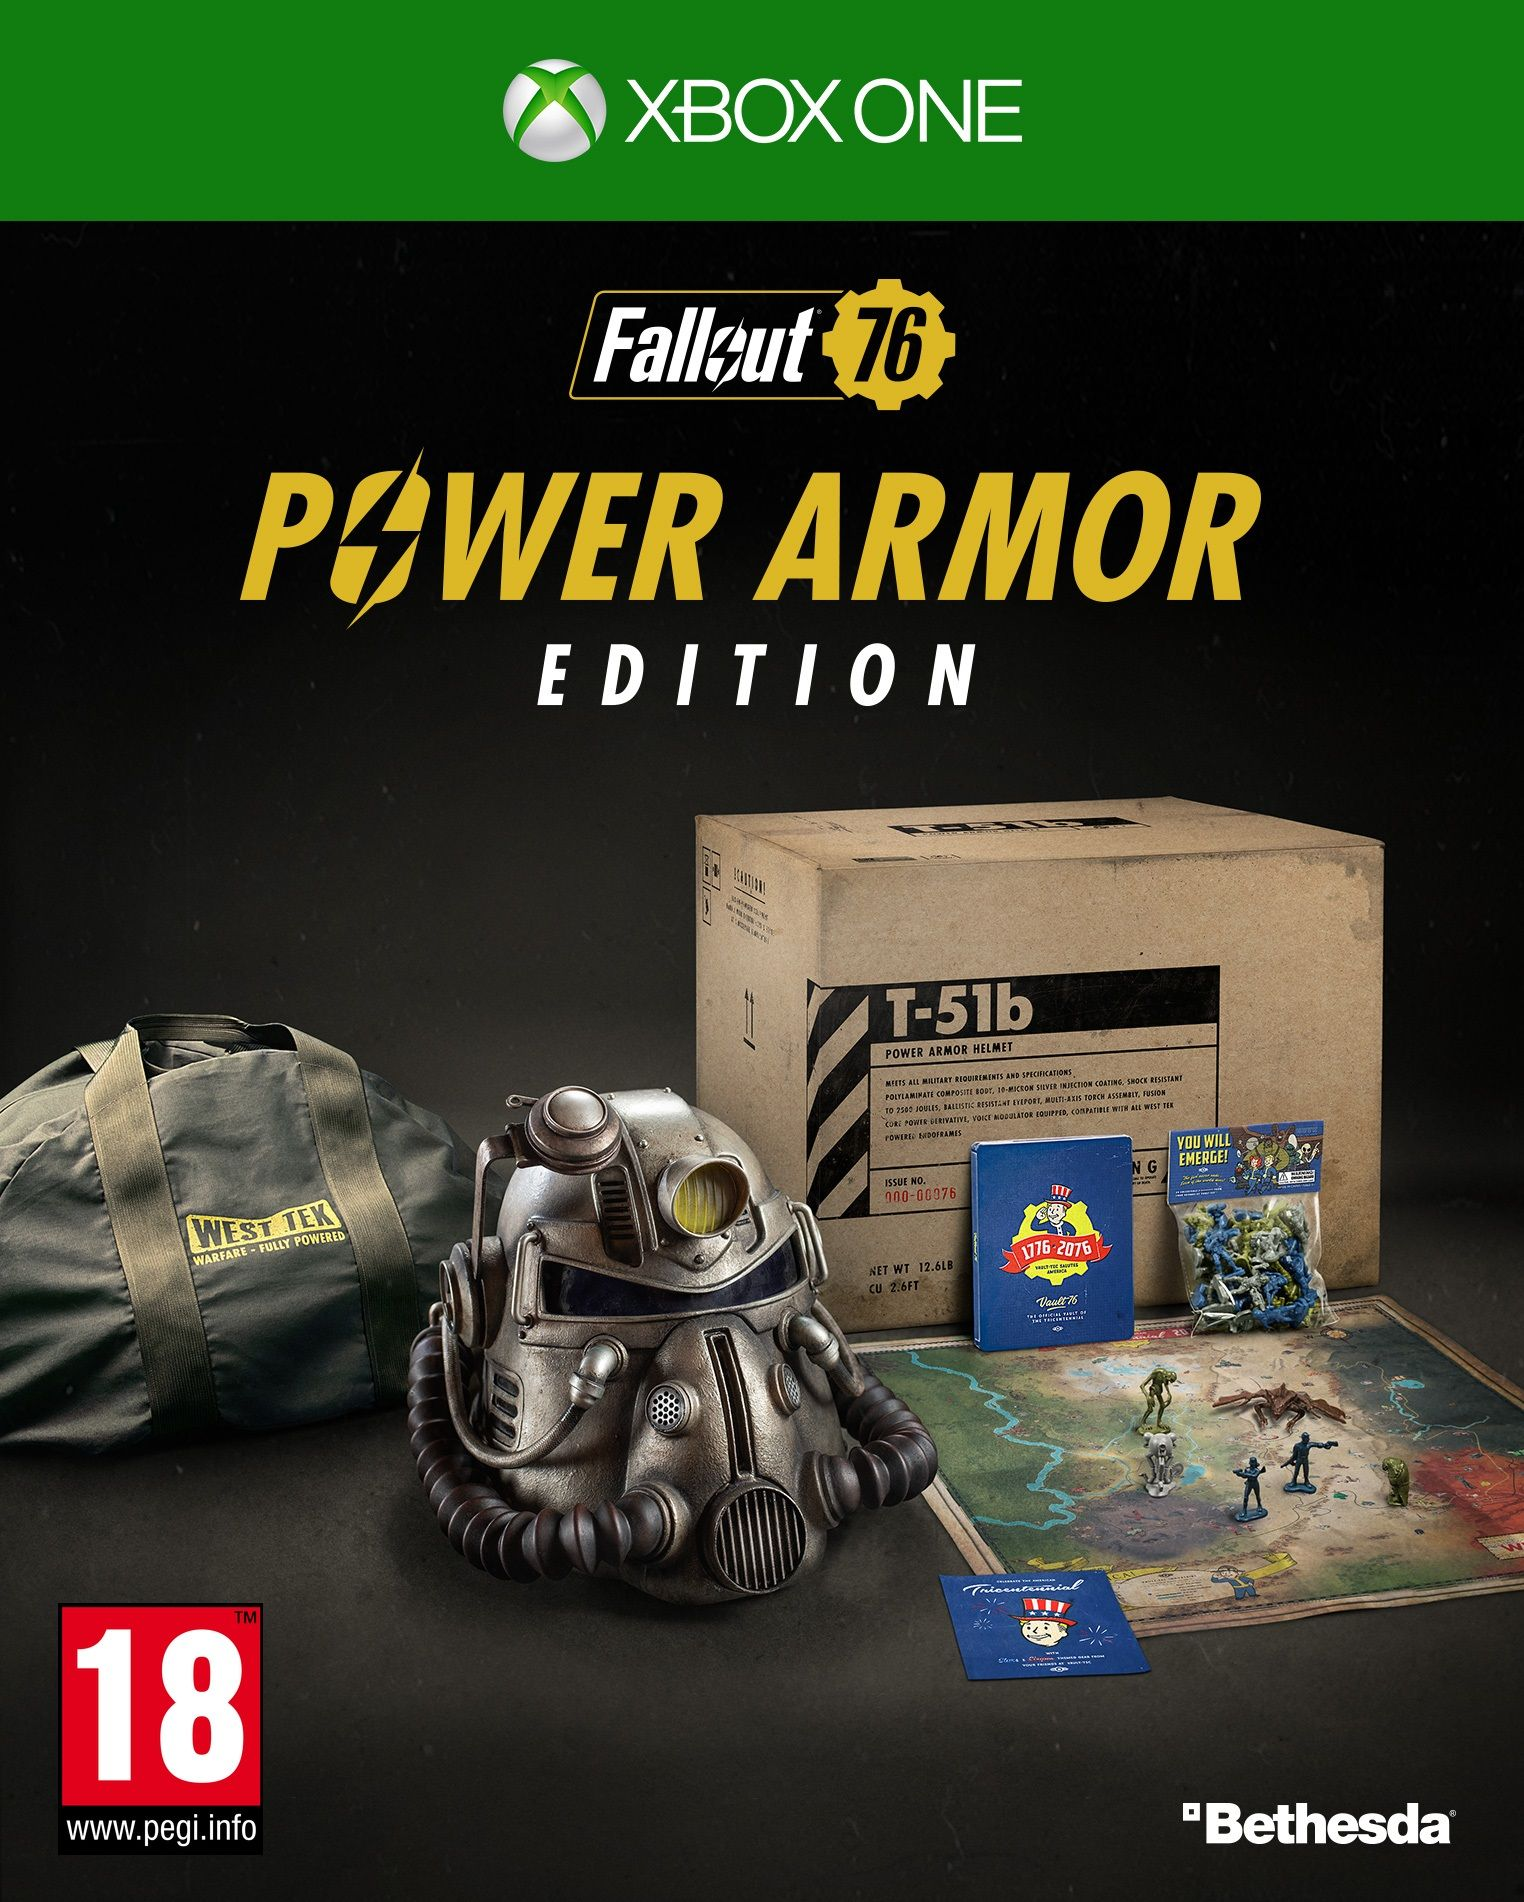 Fallout 76 Power Armor Edition (Xbox One) - 1